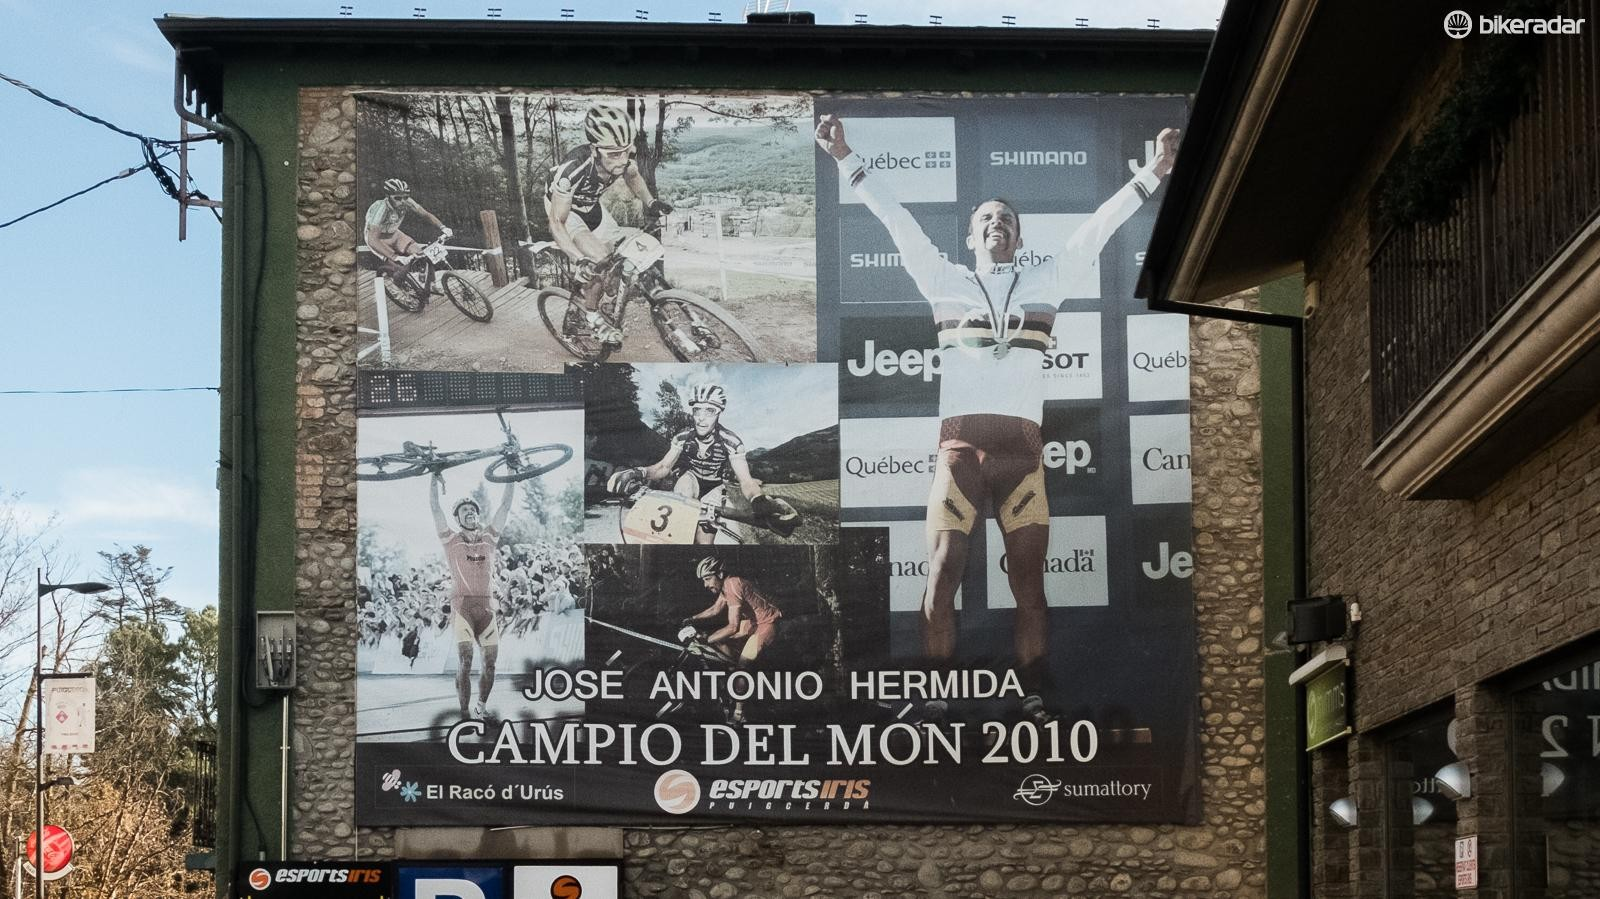 There are pictures of José, the local hero, seemingly everywhere you turn in his hometown of Puigcerdà, Spain